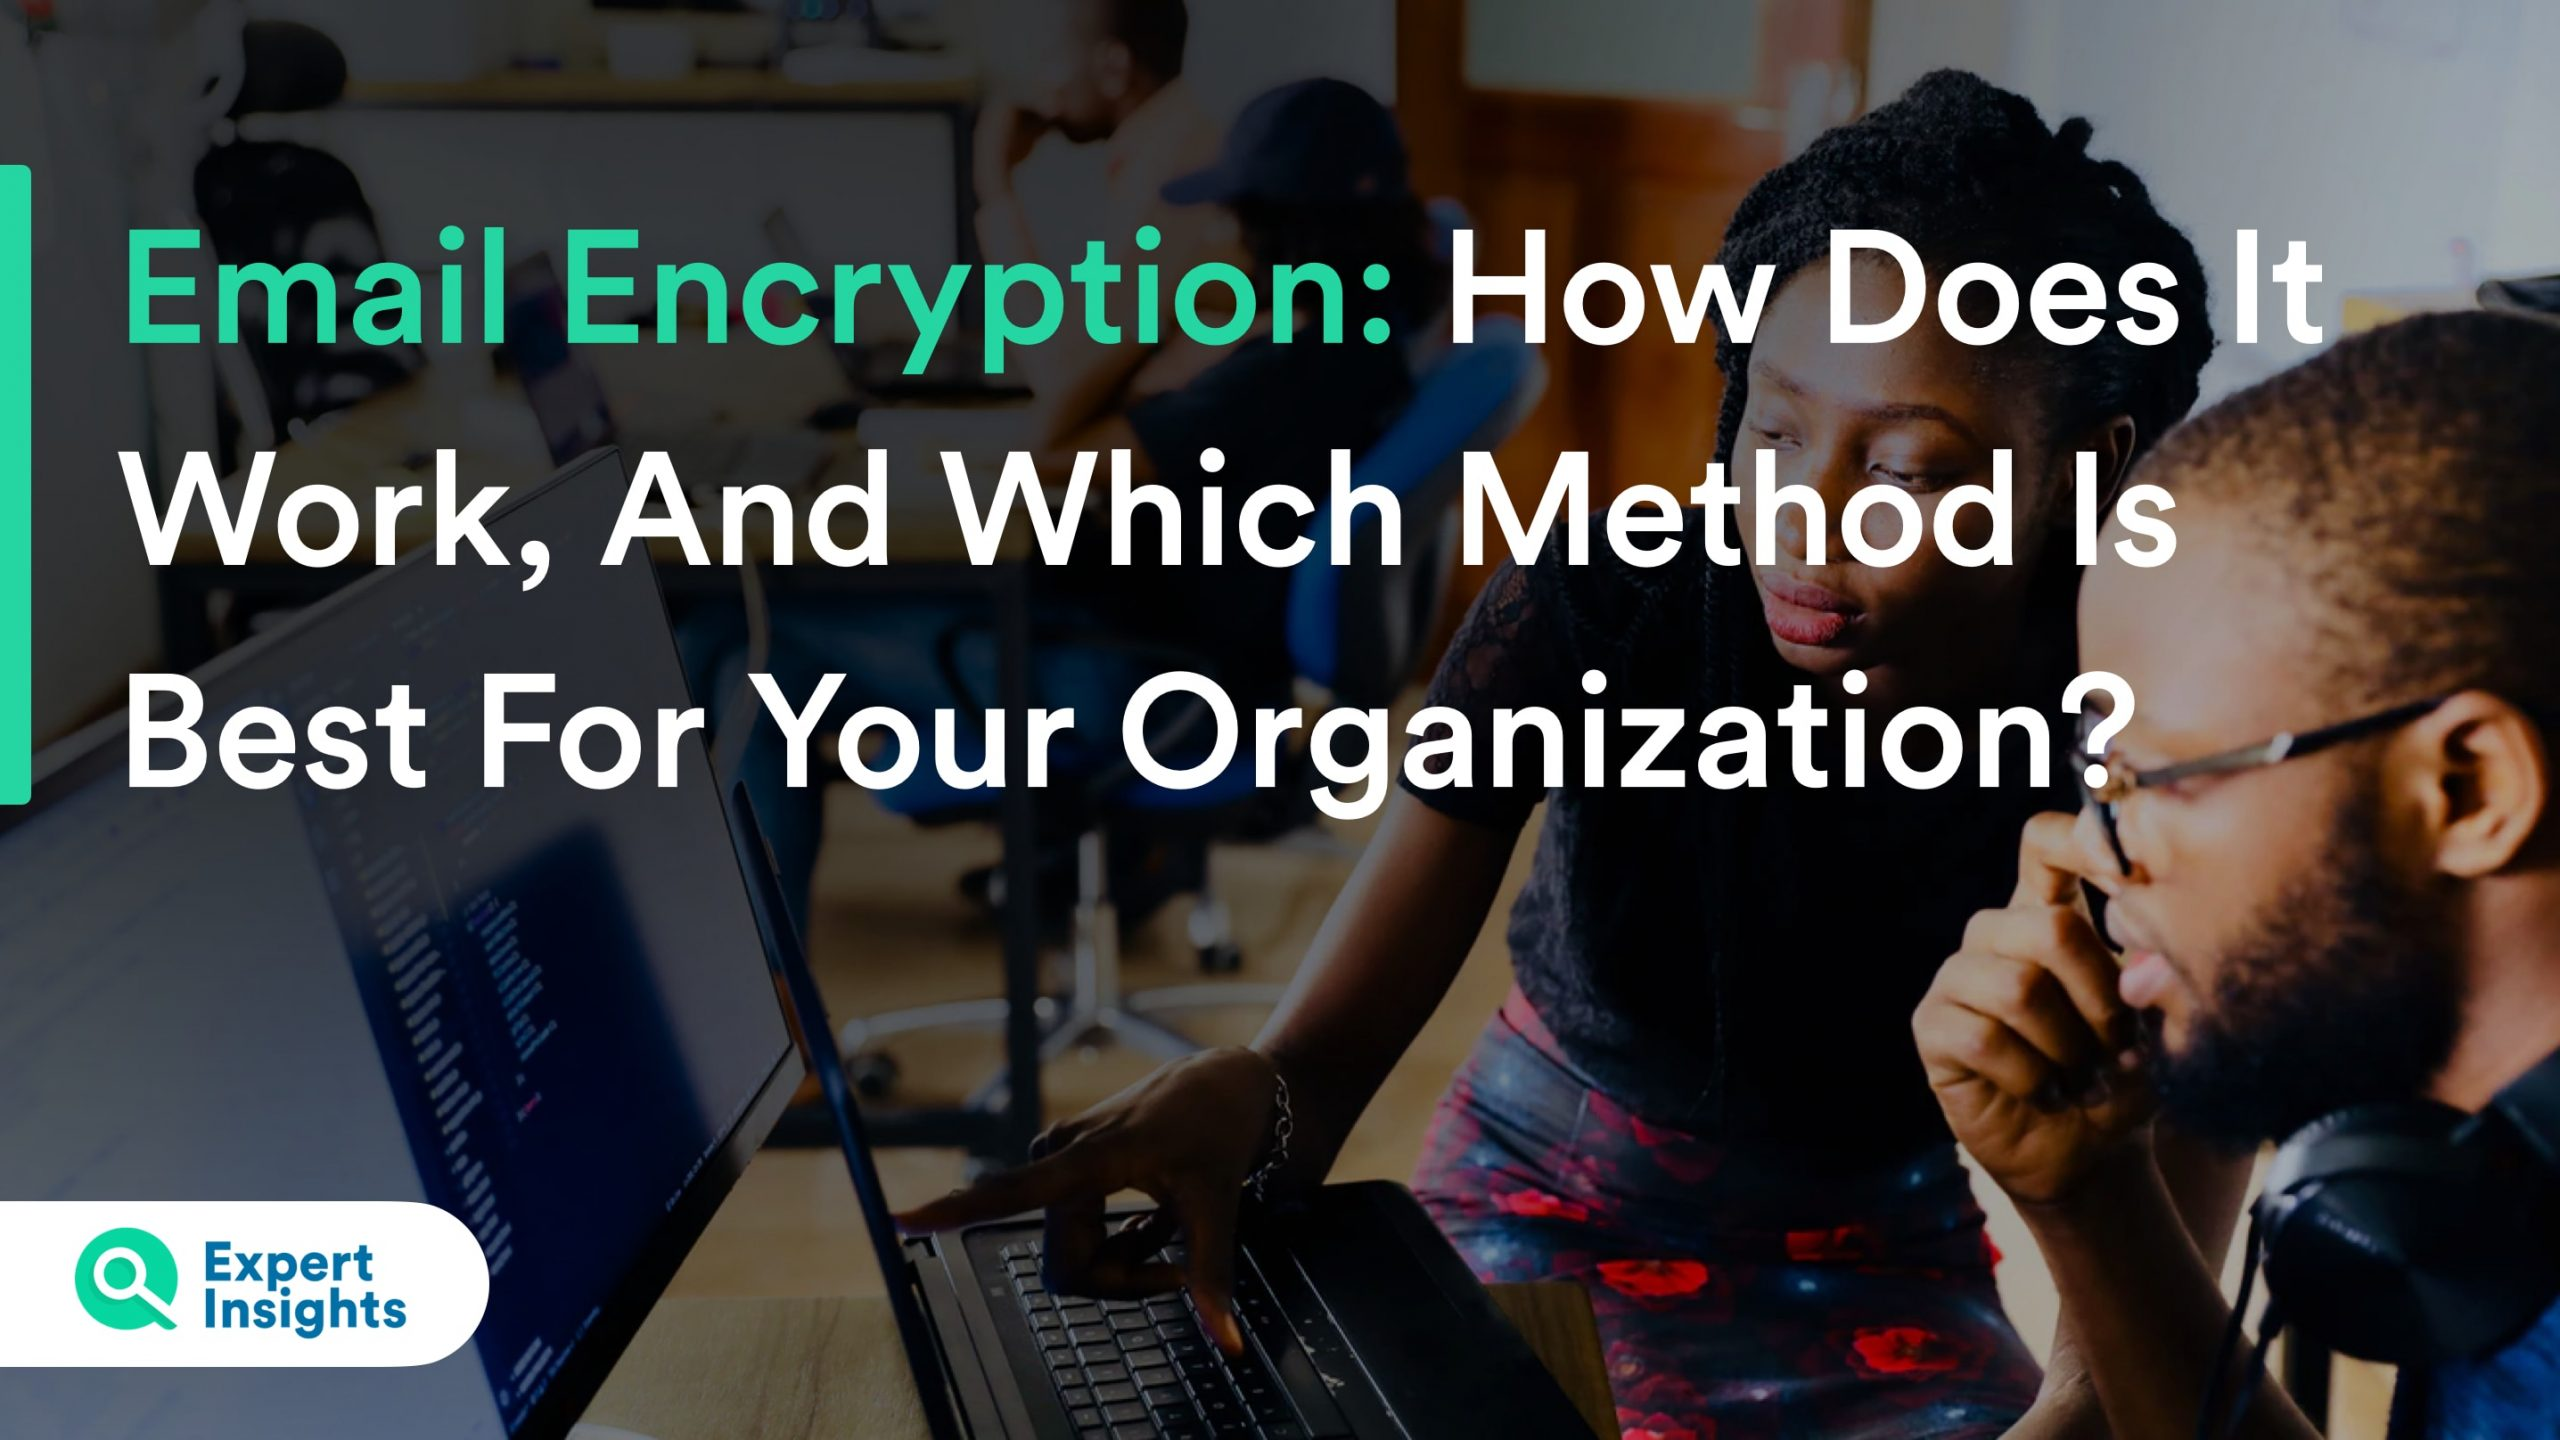 Email Encryption: How Does It Work, And Which Method Is Best For Your Organization?